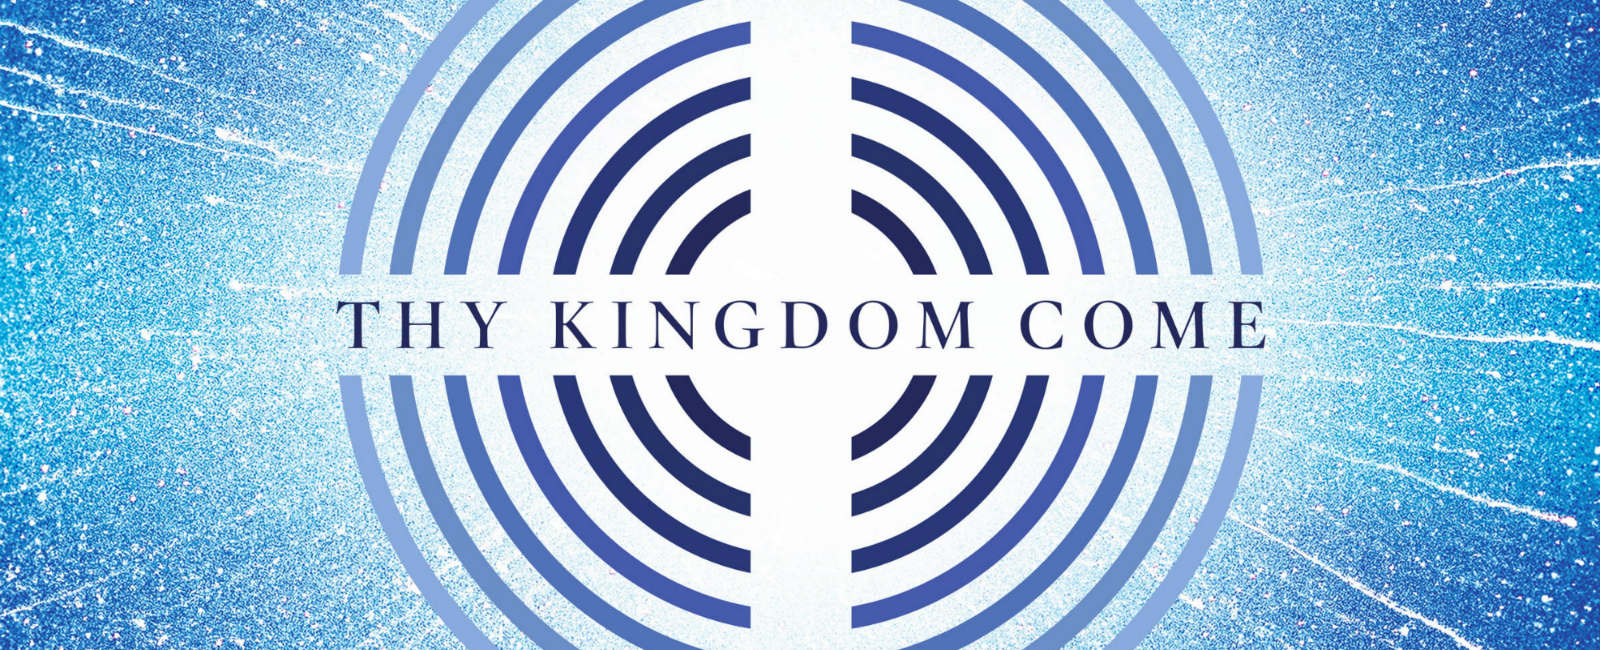 Resources and Events for Thy Kingdom Come 2019